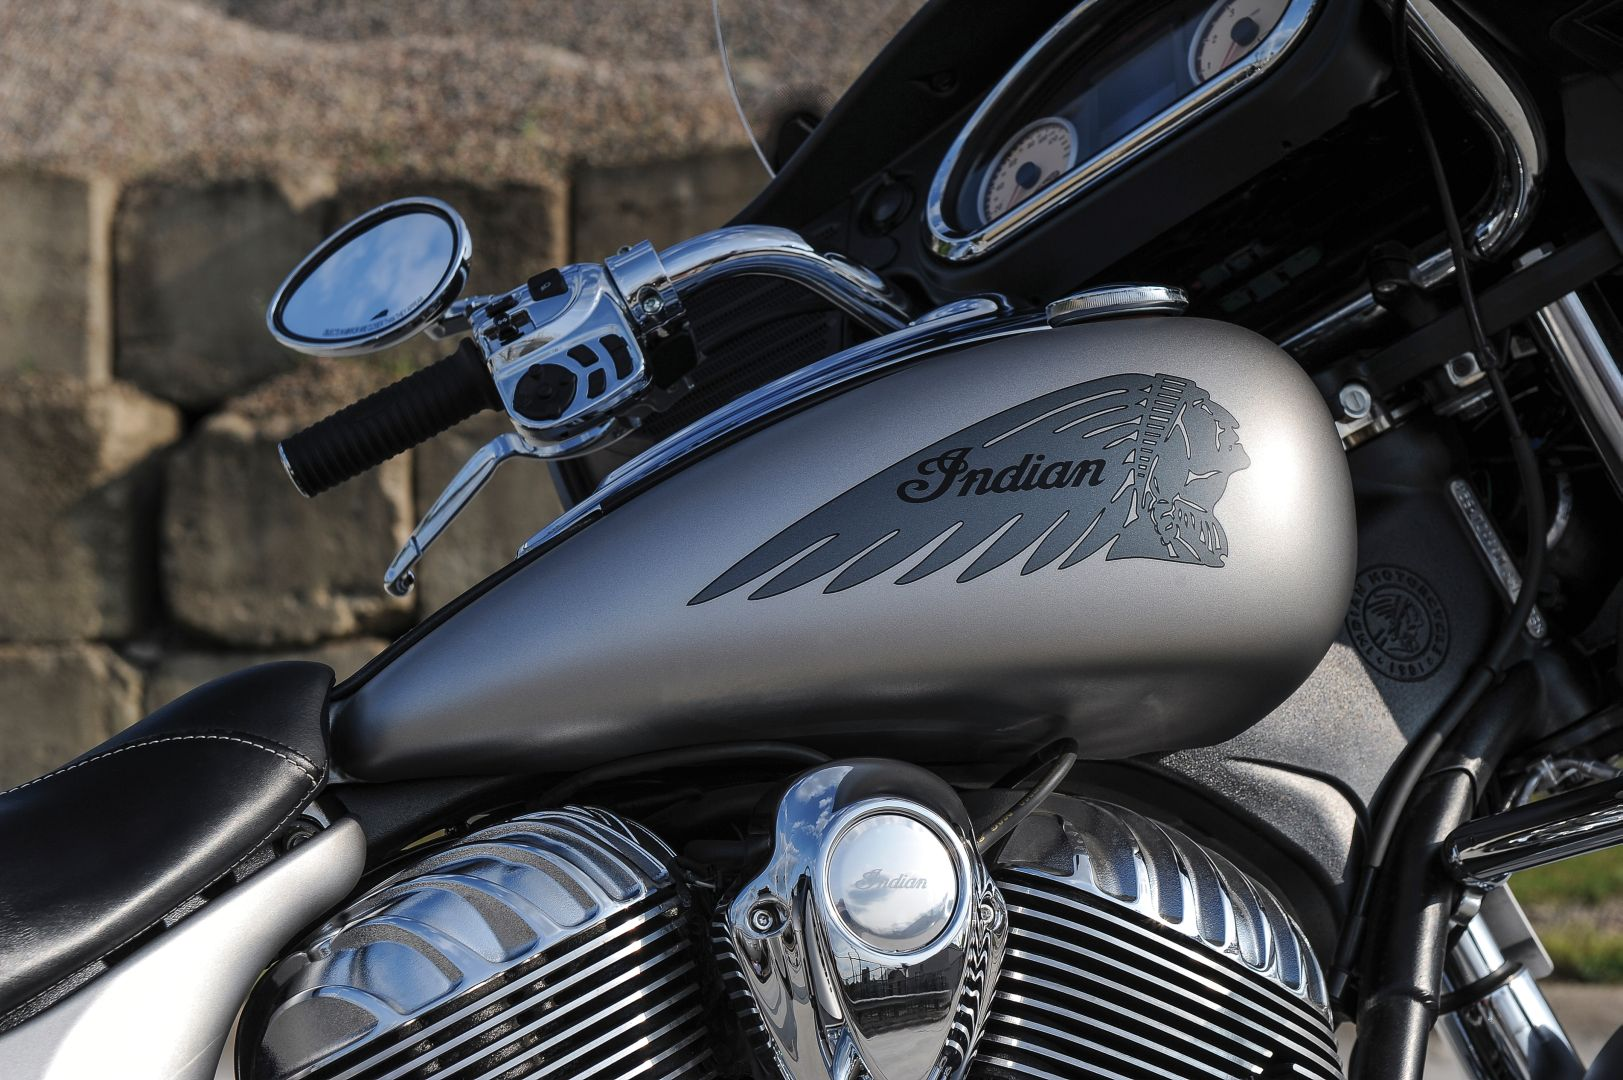 New car colors 2016 - 2016 Indian Chieftain Looks In New Colors Price Announced Autoevolution